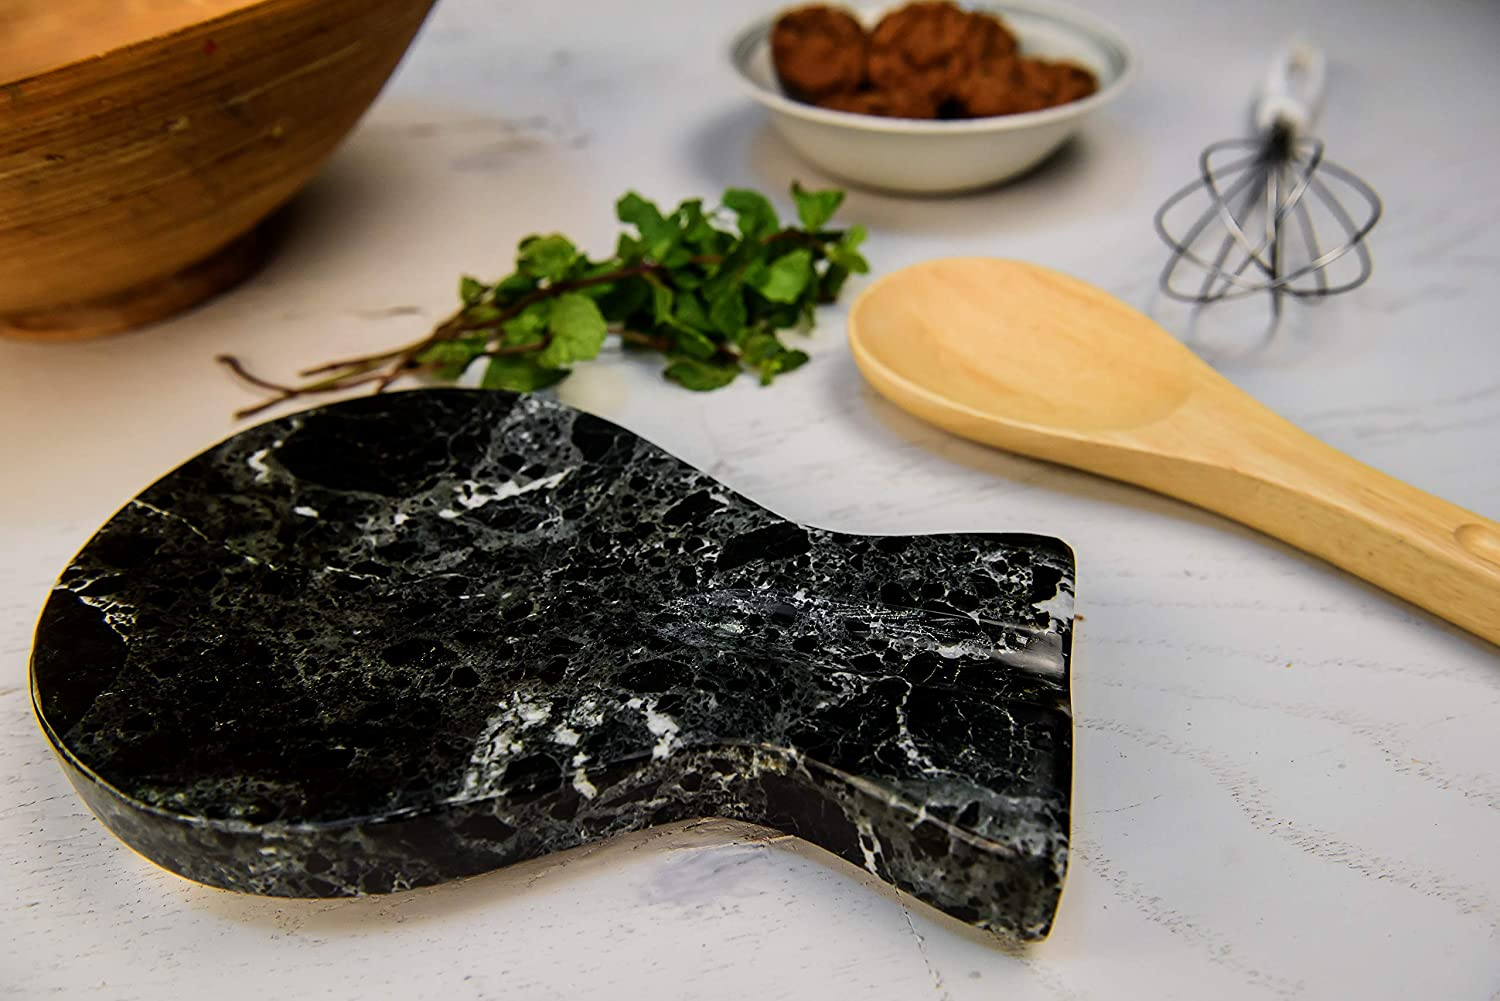 Non Wood Non Metal Cooking Spoon Organizer RADICALn Spoon Rest Handmade Marble Black Spatula Fork Ladle Utensil Rest Stove Top Chef Kitchen Tool Spoon Holder Black